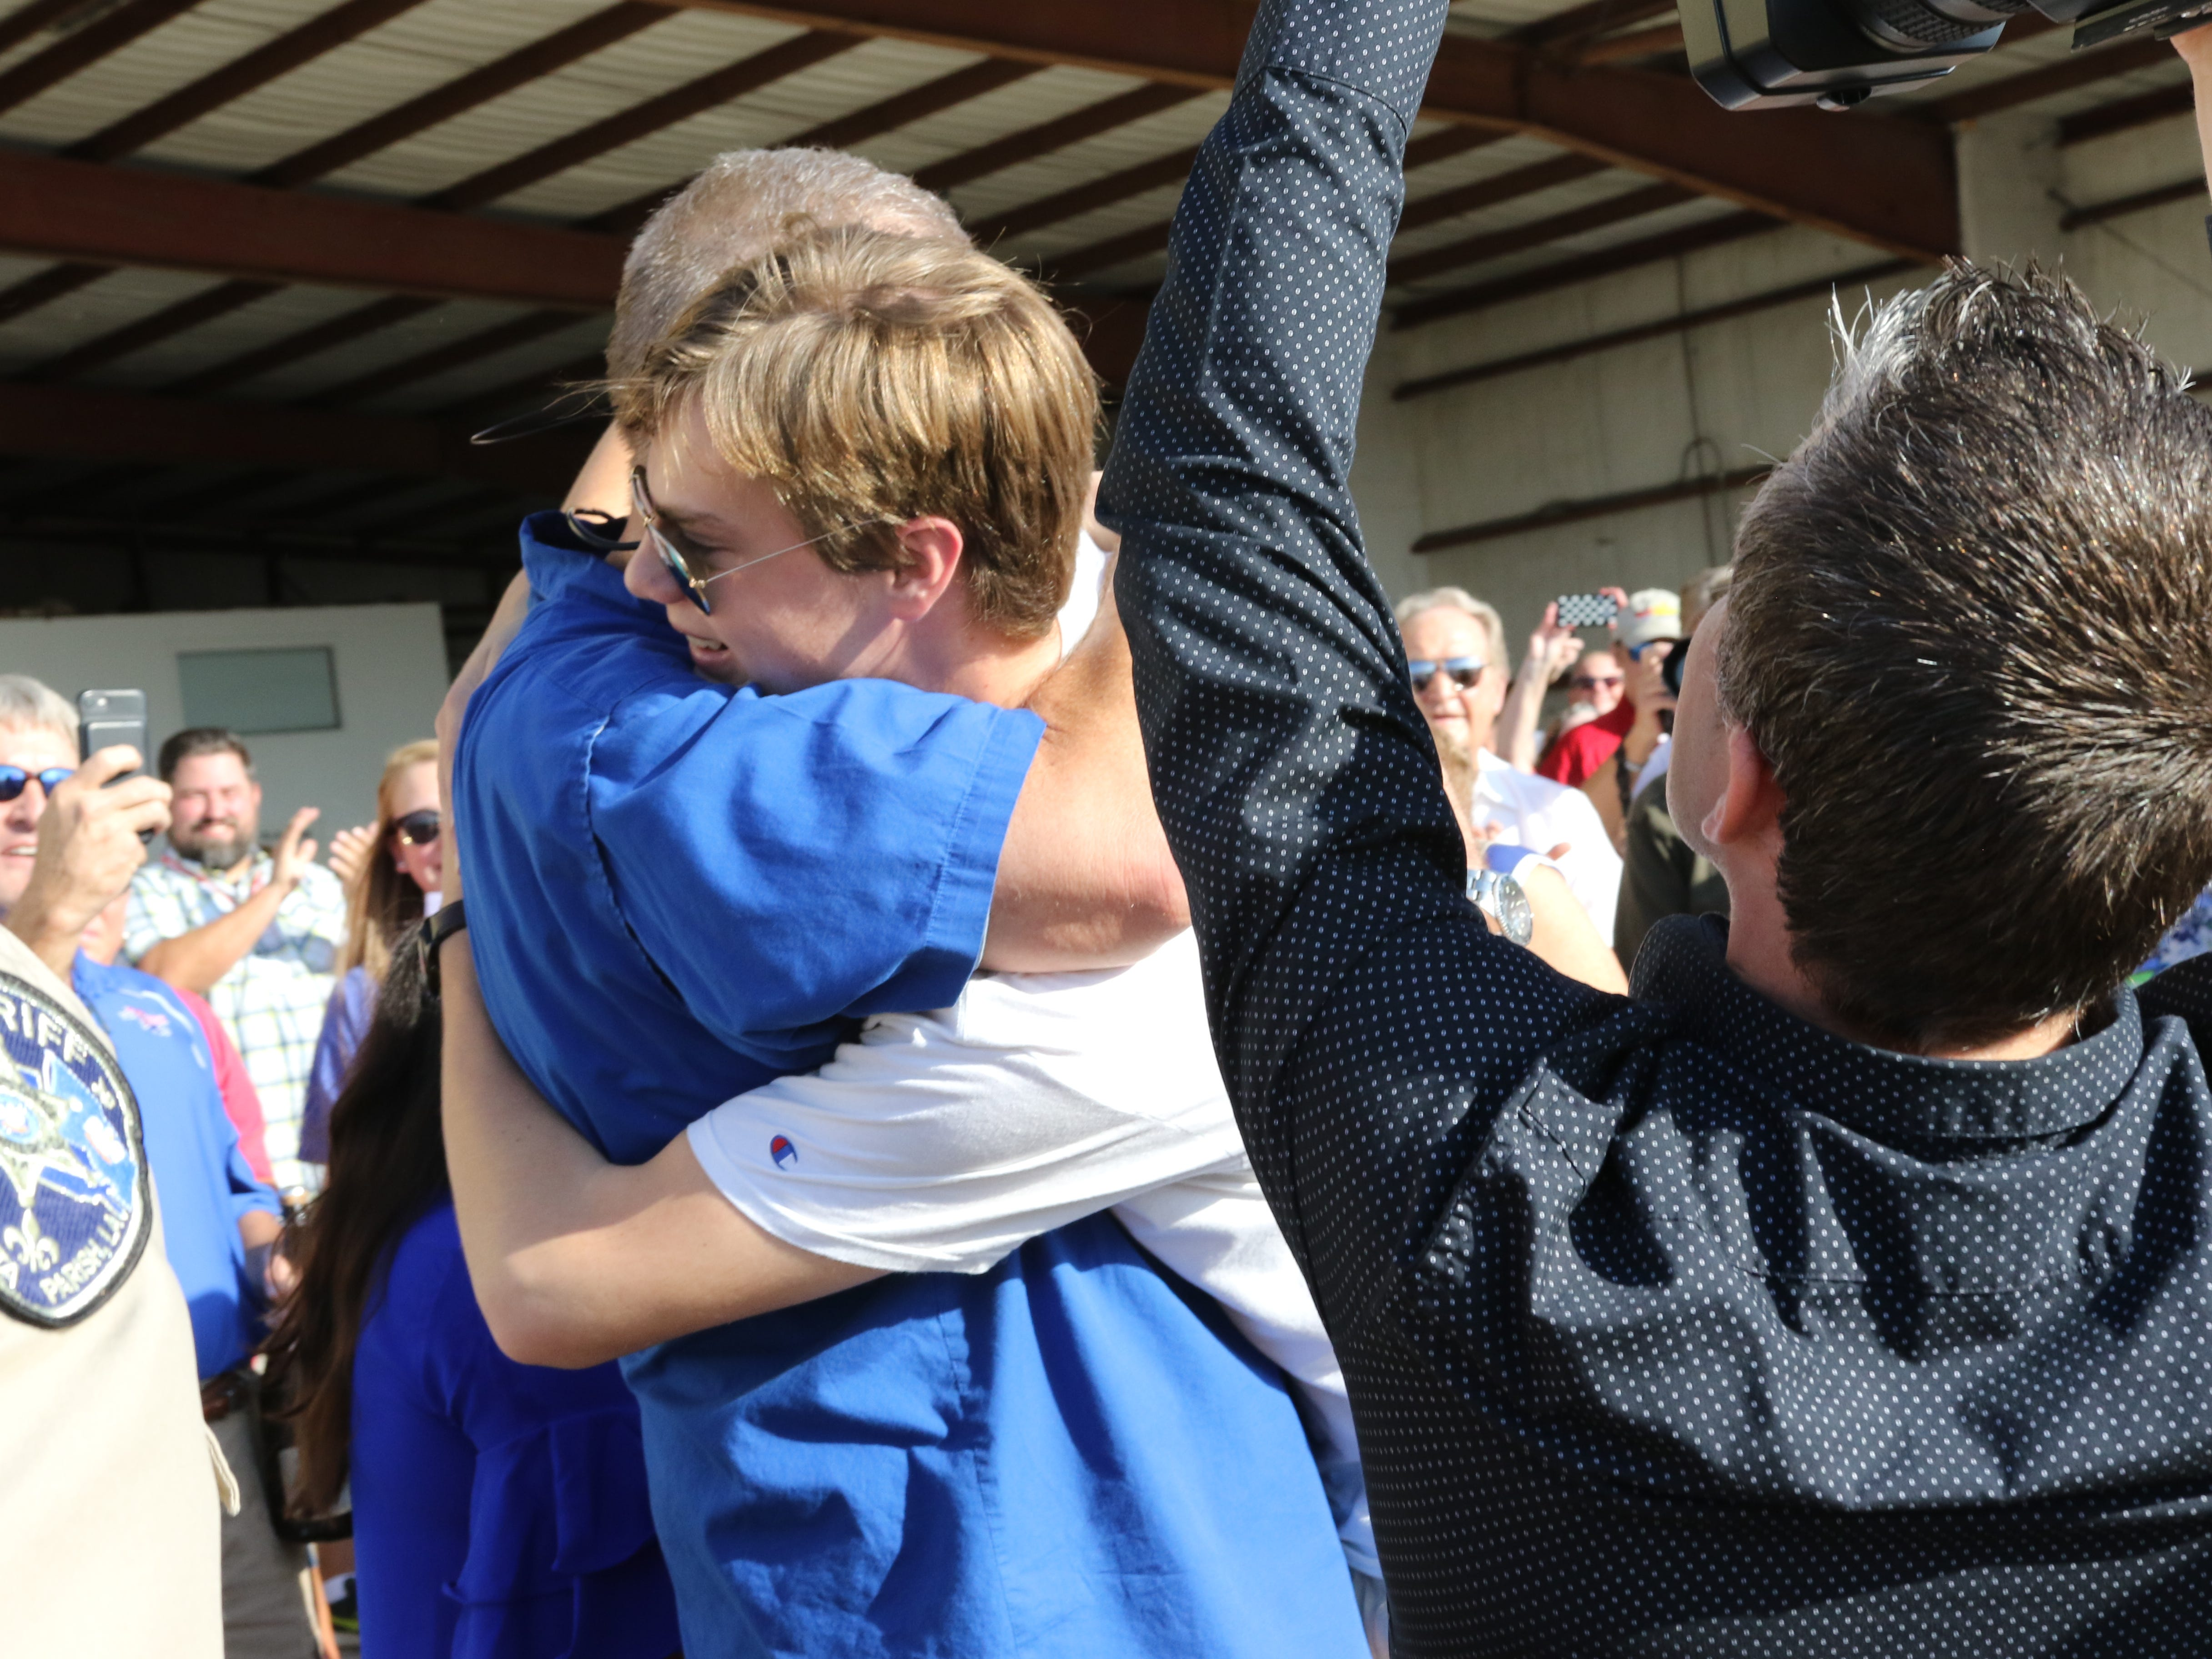 The community welcomes Mason Andrews home from his world record journey around the globe on Saturday, October 6, at the Pilots for Patients Hanger at the Monroe Regional Airport.